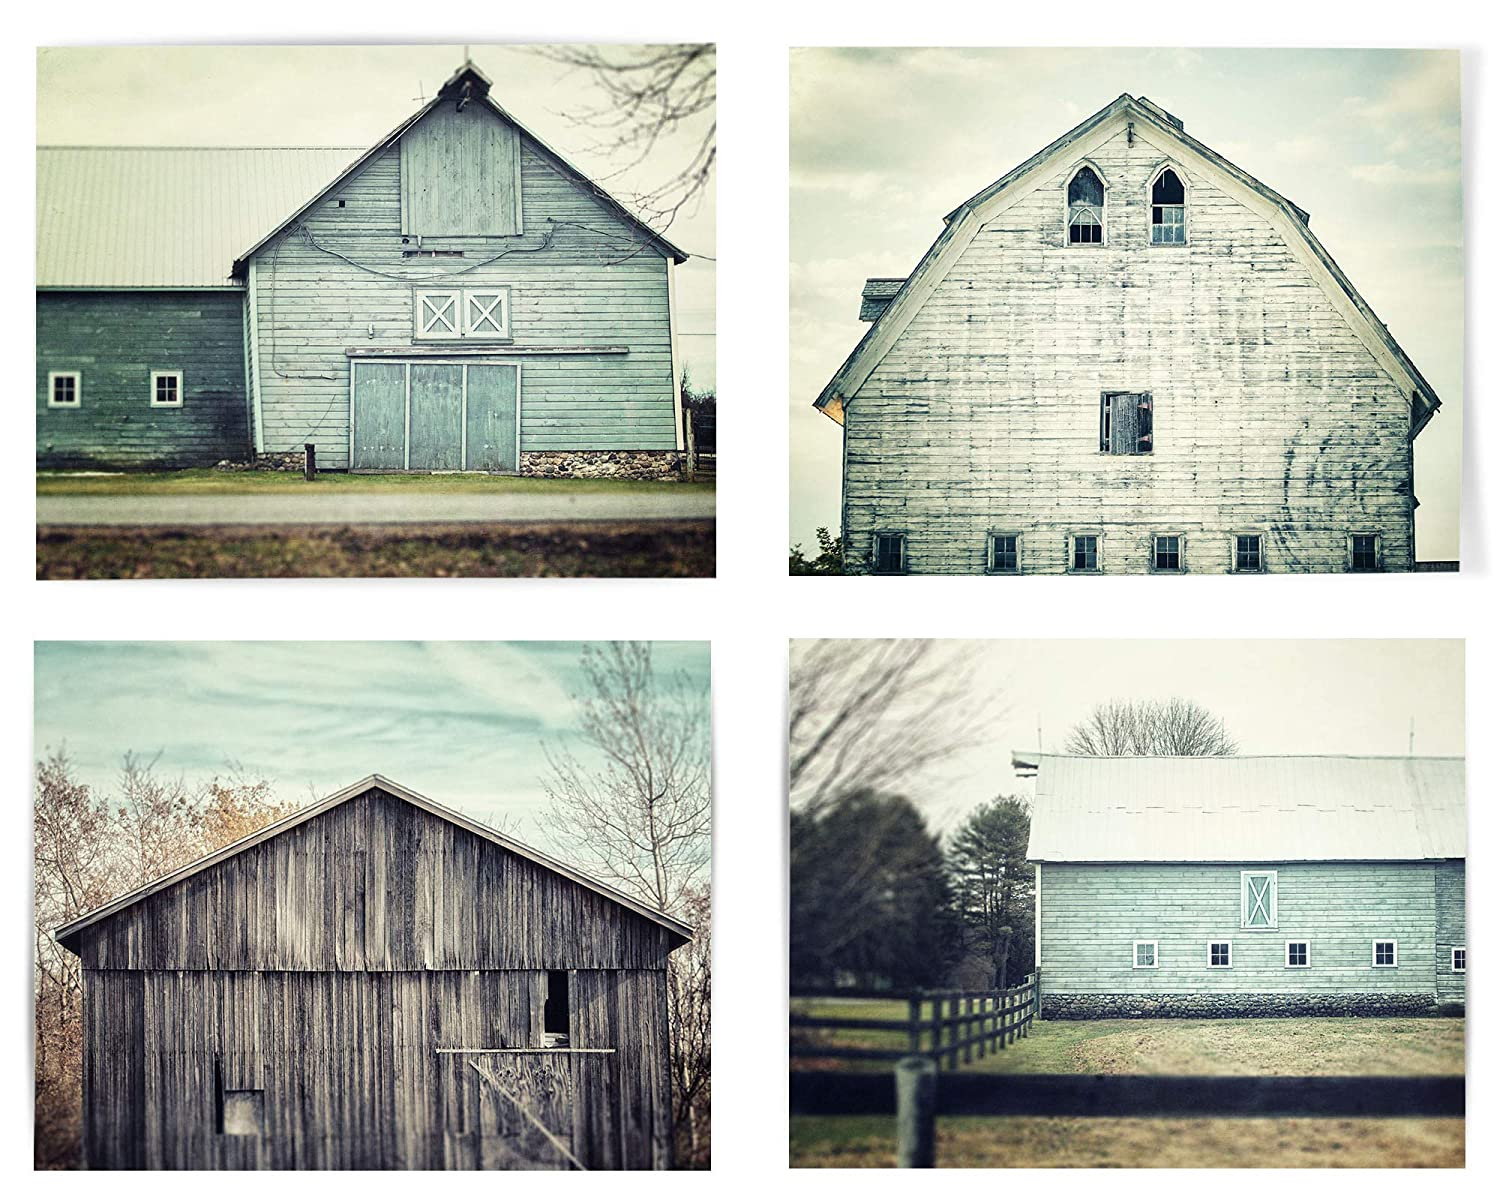 Shabby Chic Farmhouse Wall Art Home Decor Set of 4 Prints (Not Framed). Teal and Aqua Barn Landscapes. 5x7, 8x10, 11x14, or 16x20. (4 5x7 Prints Only)